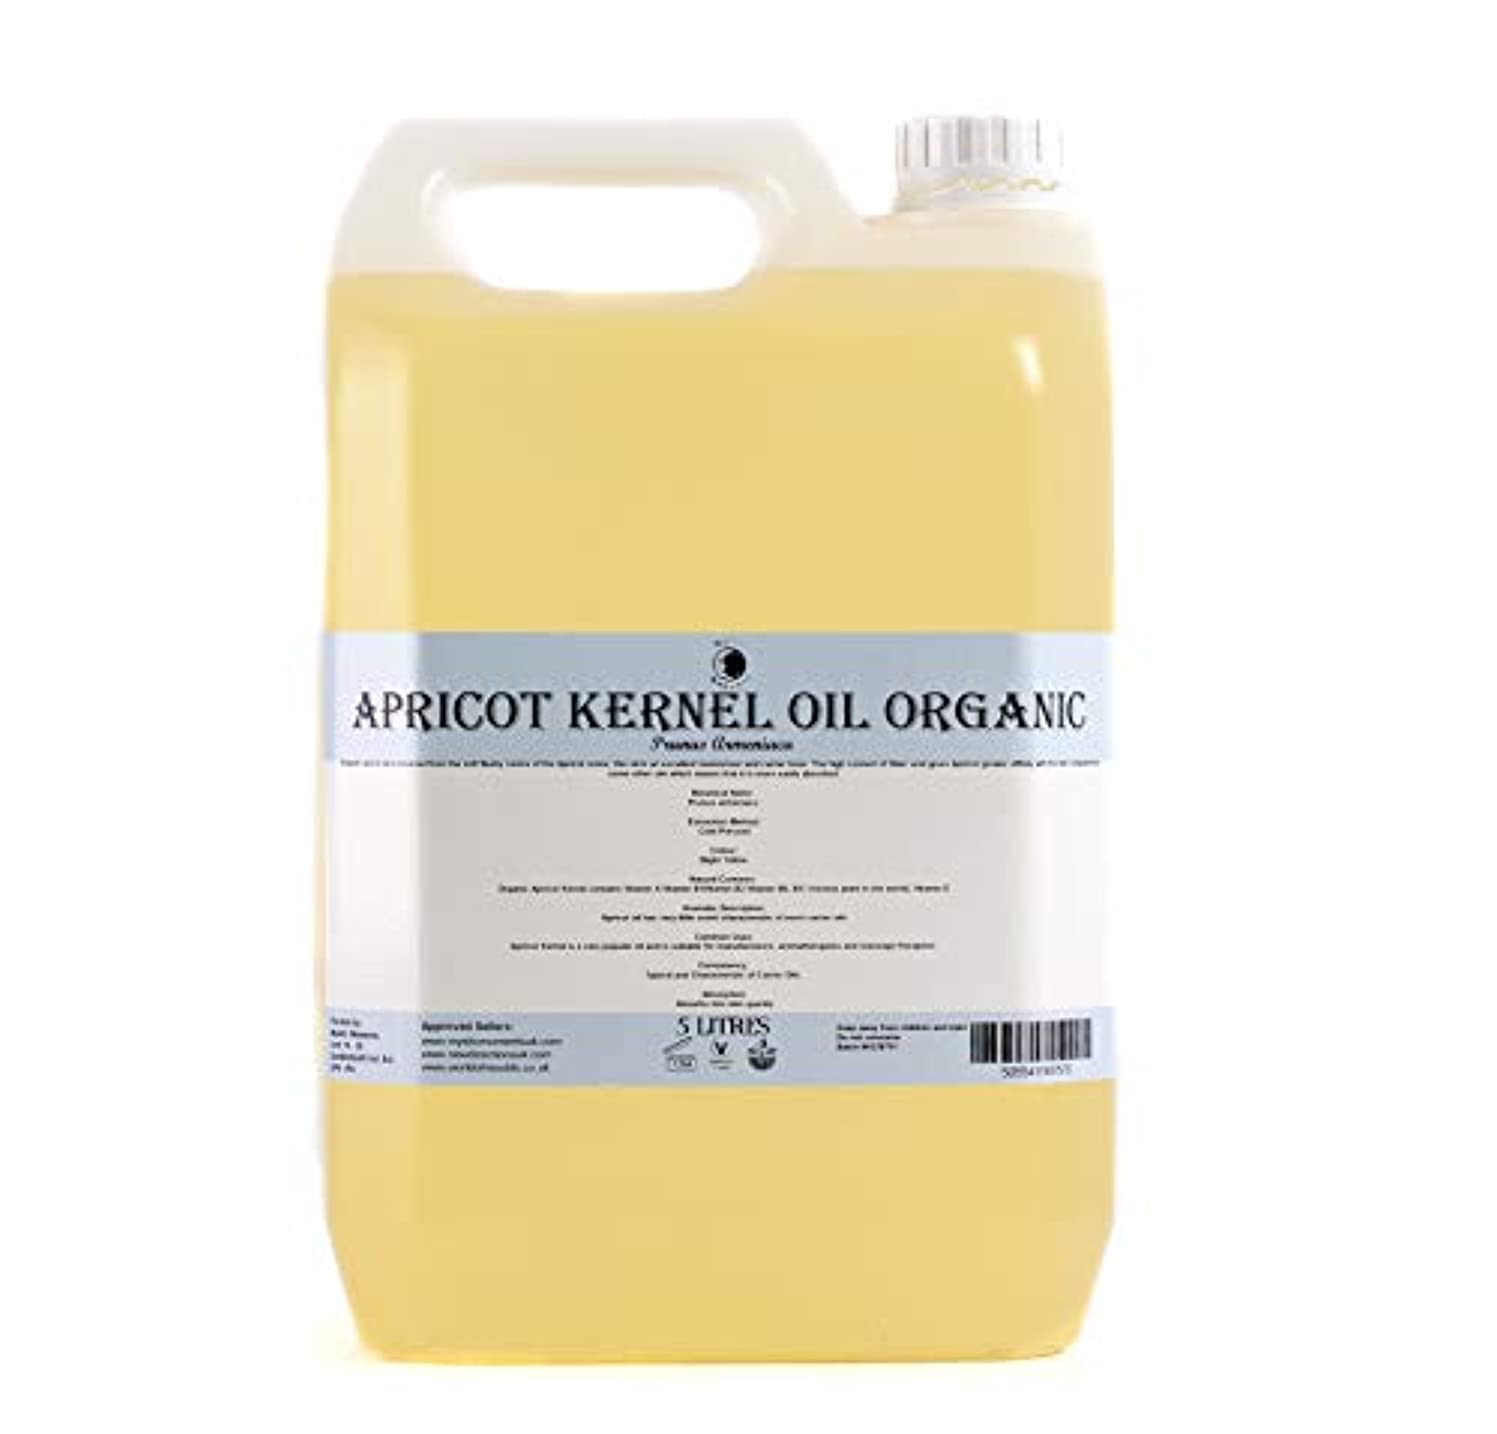 未就学ヘビーパスMystic Moments | Apricot Kernel Organic Carrier Oil - 5 Litres - 100% Pure